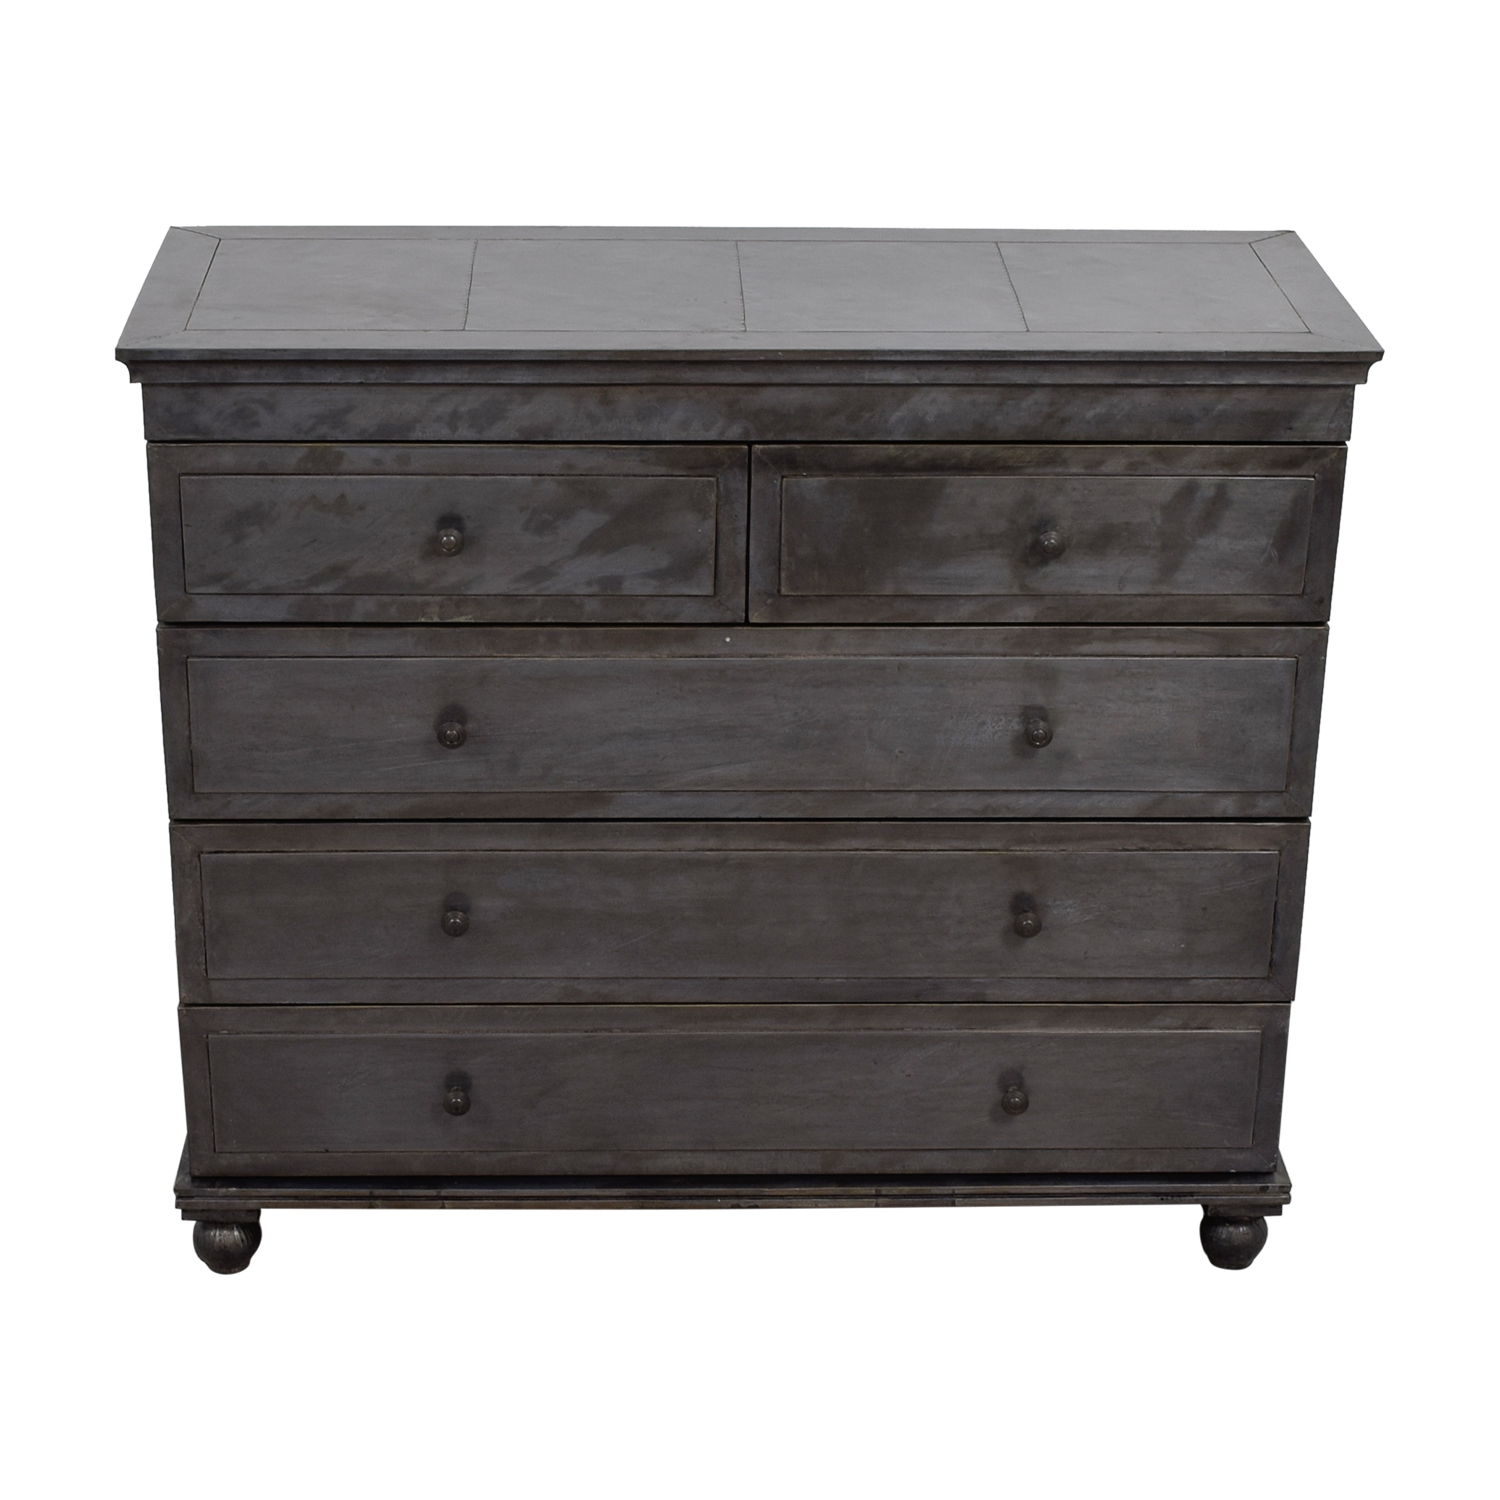 Restoration Hardware Restoration Hardware Zinc Finish Five-Drawer Dresser nyc